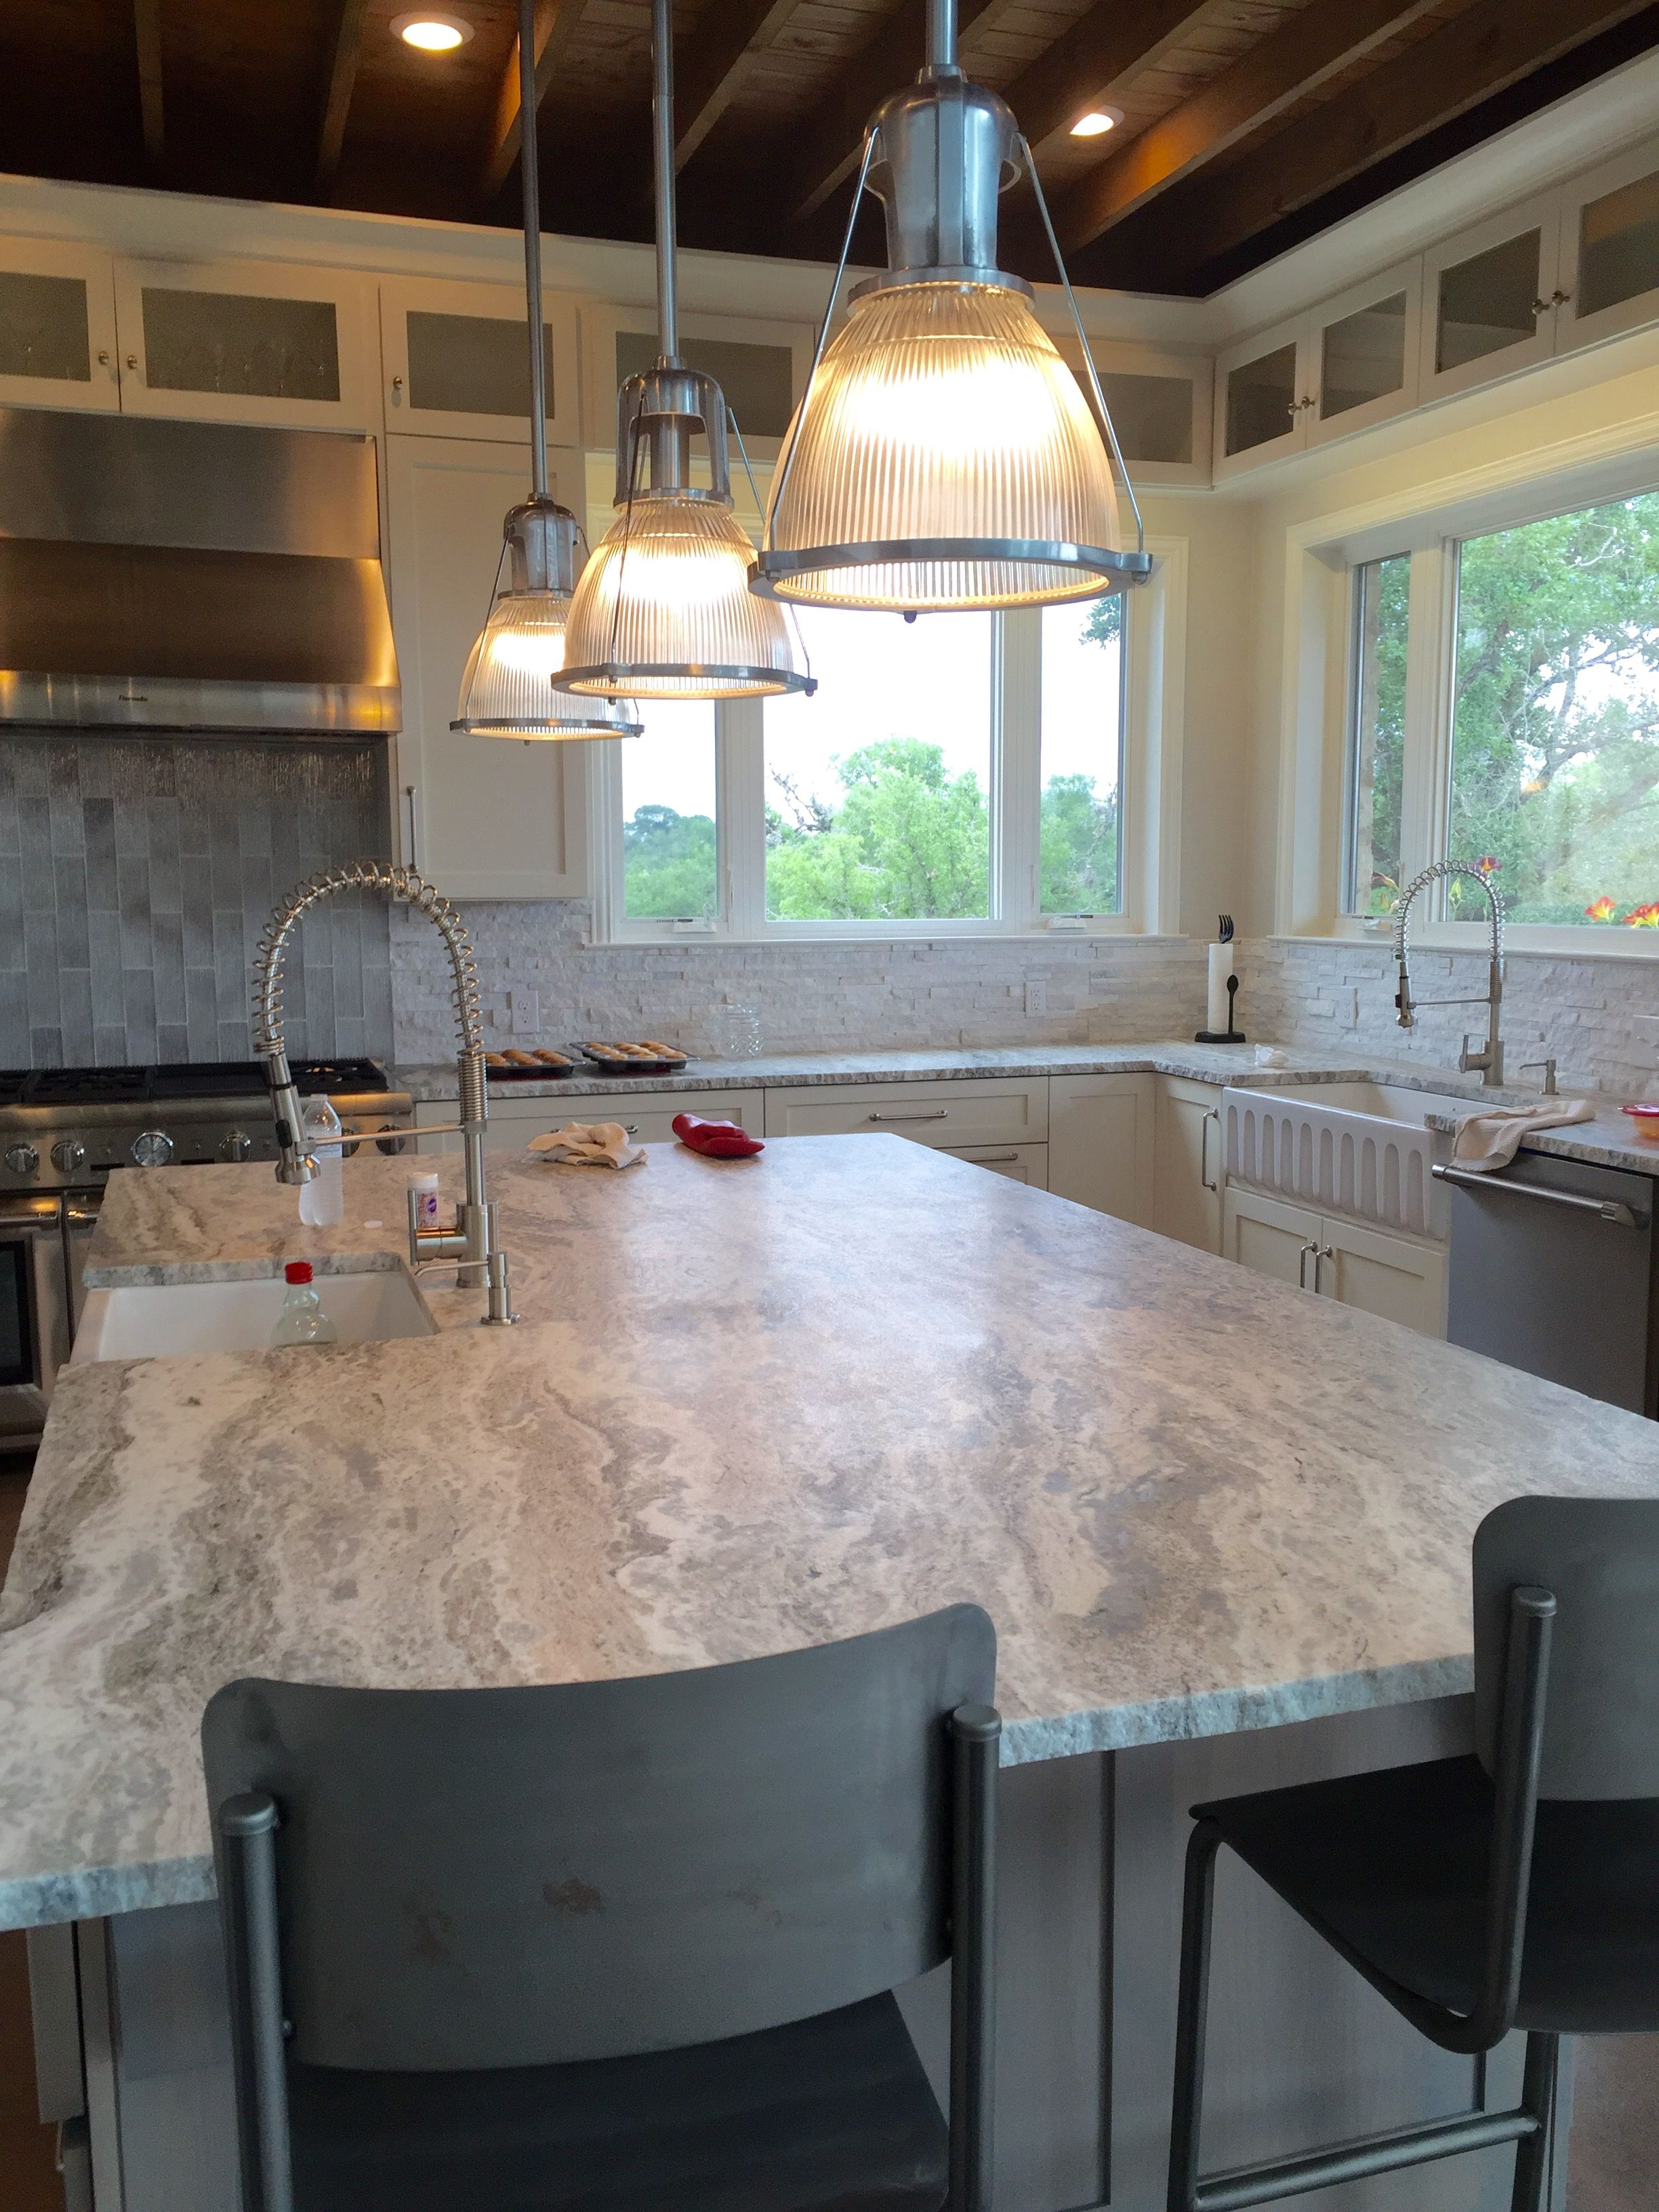 We Used Fantasy Brown Granite Granite Countertops Kitchen Kitchen Remodel Countertops Replacing Kitchen Countertops